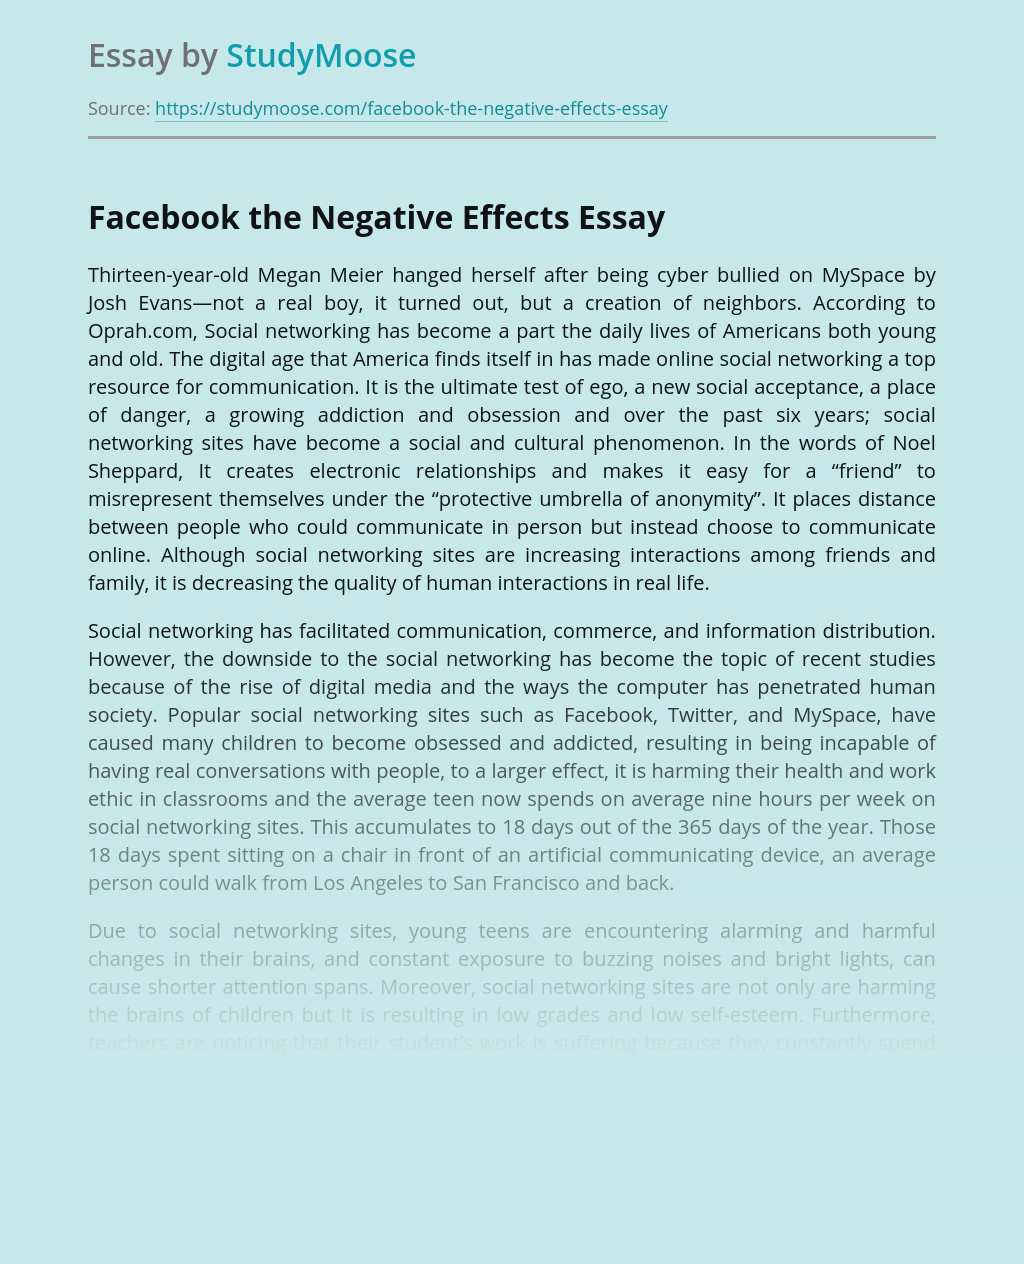 Facebook the Negative Effects